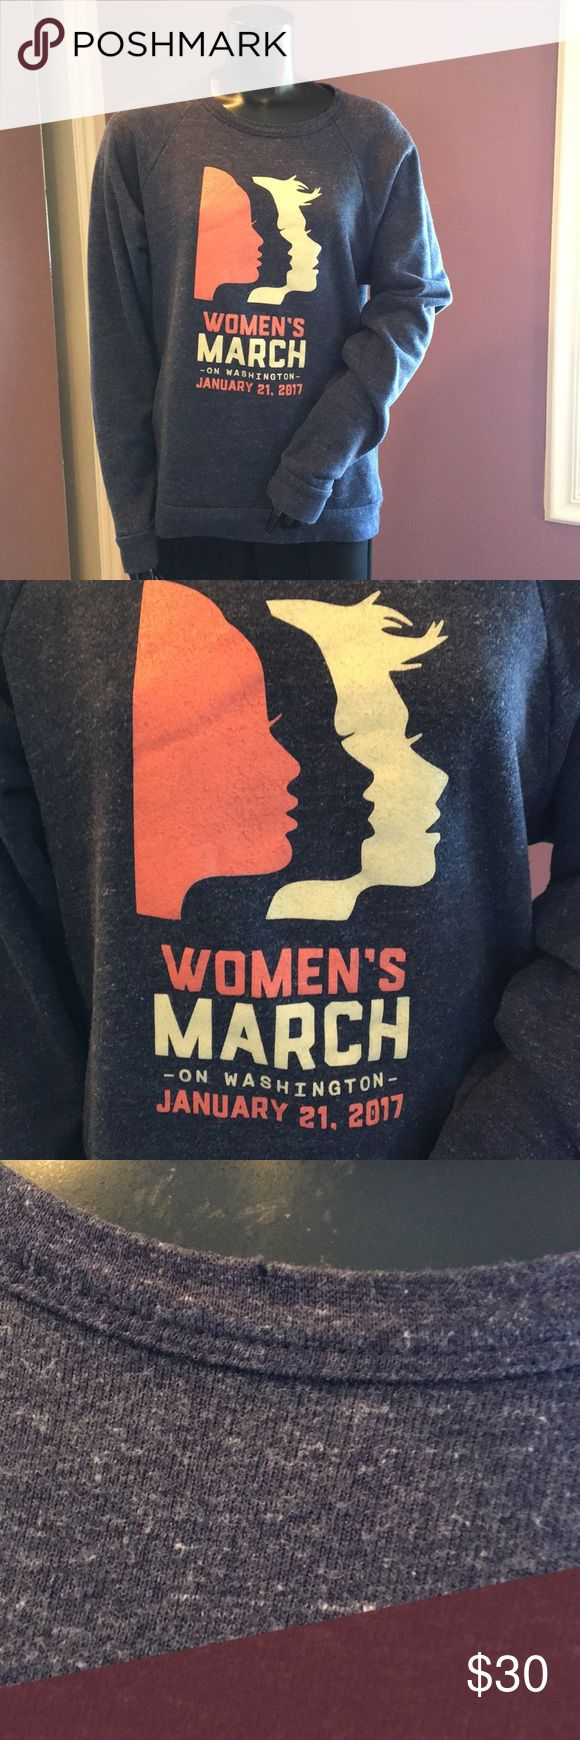 Women's March on Washington Pullover Sweater Navy blue long sleeve Pullover sweater from The Women's March on Washington on January 21, 2017. Size Large. Small hole on collar and in back. A piece of history! In good condition overall. Sweaters Crew & Scoop Necks